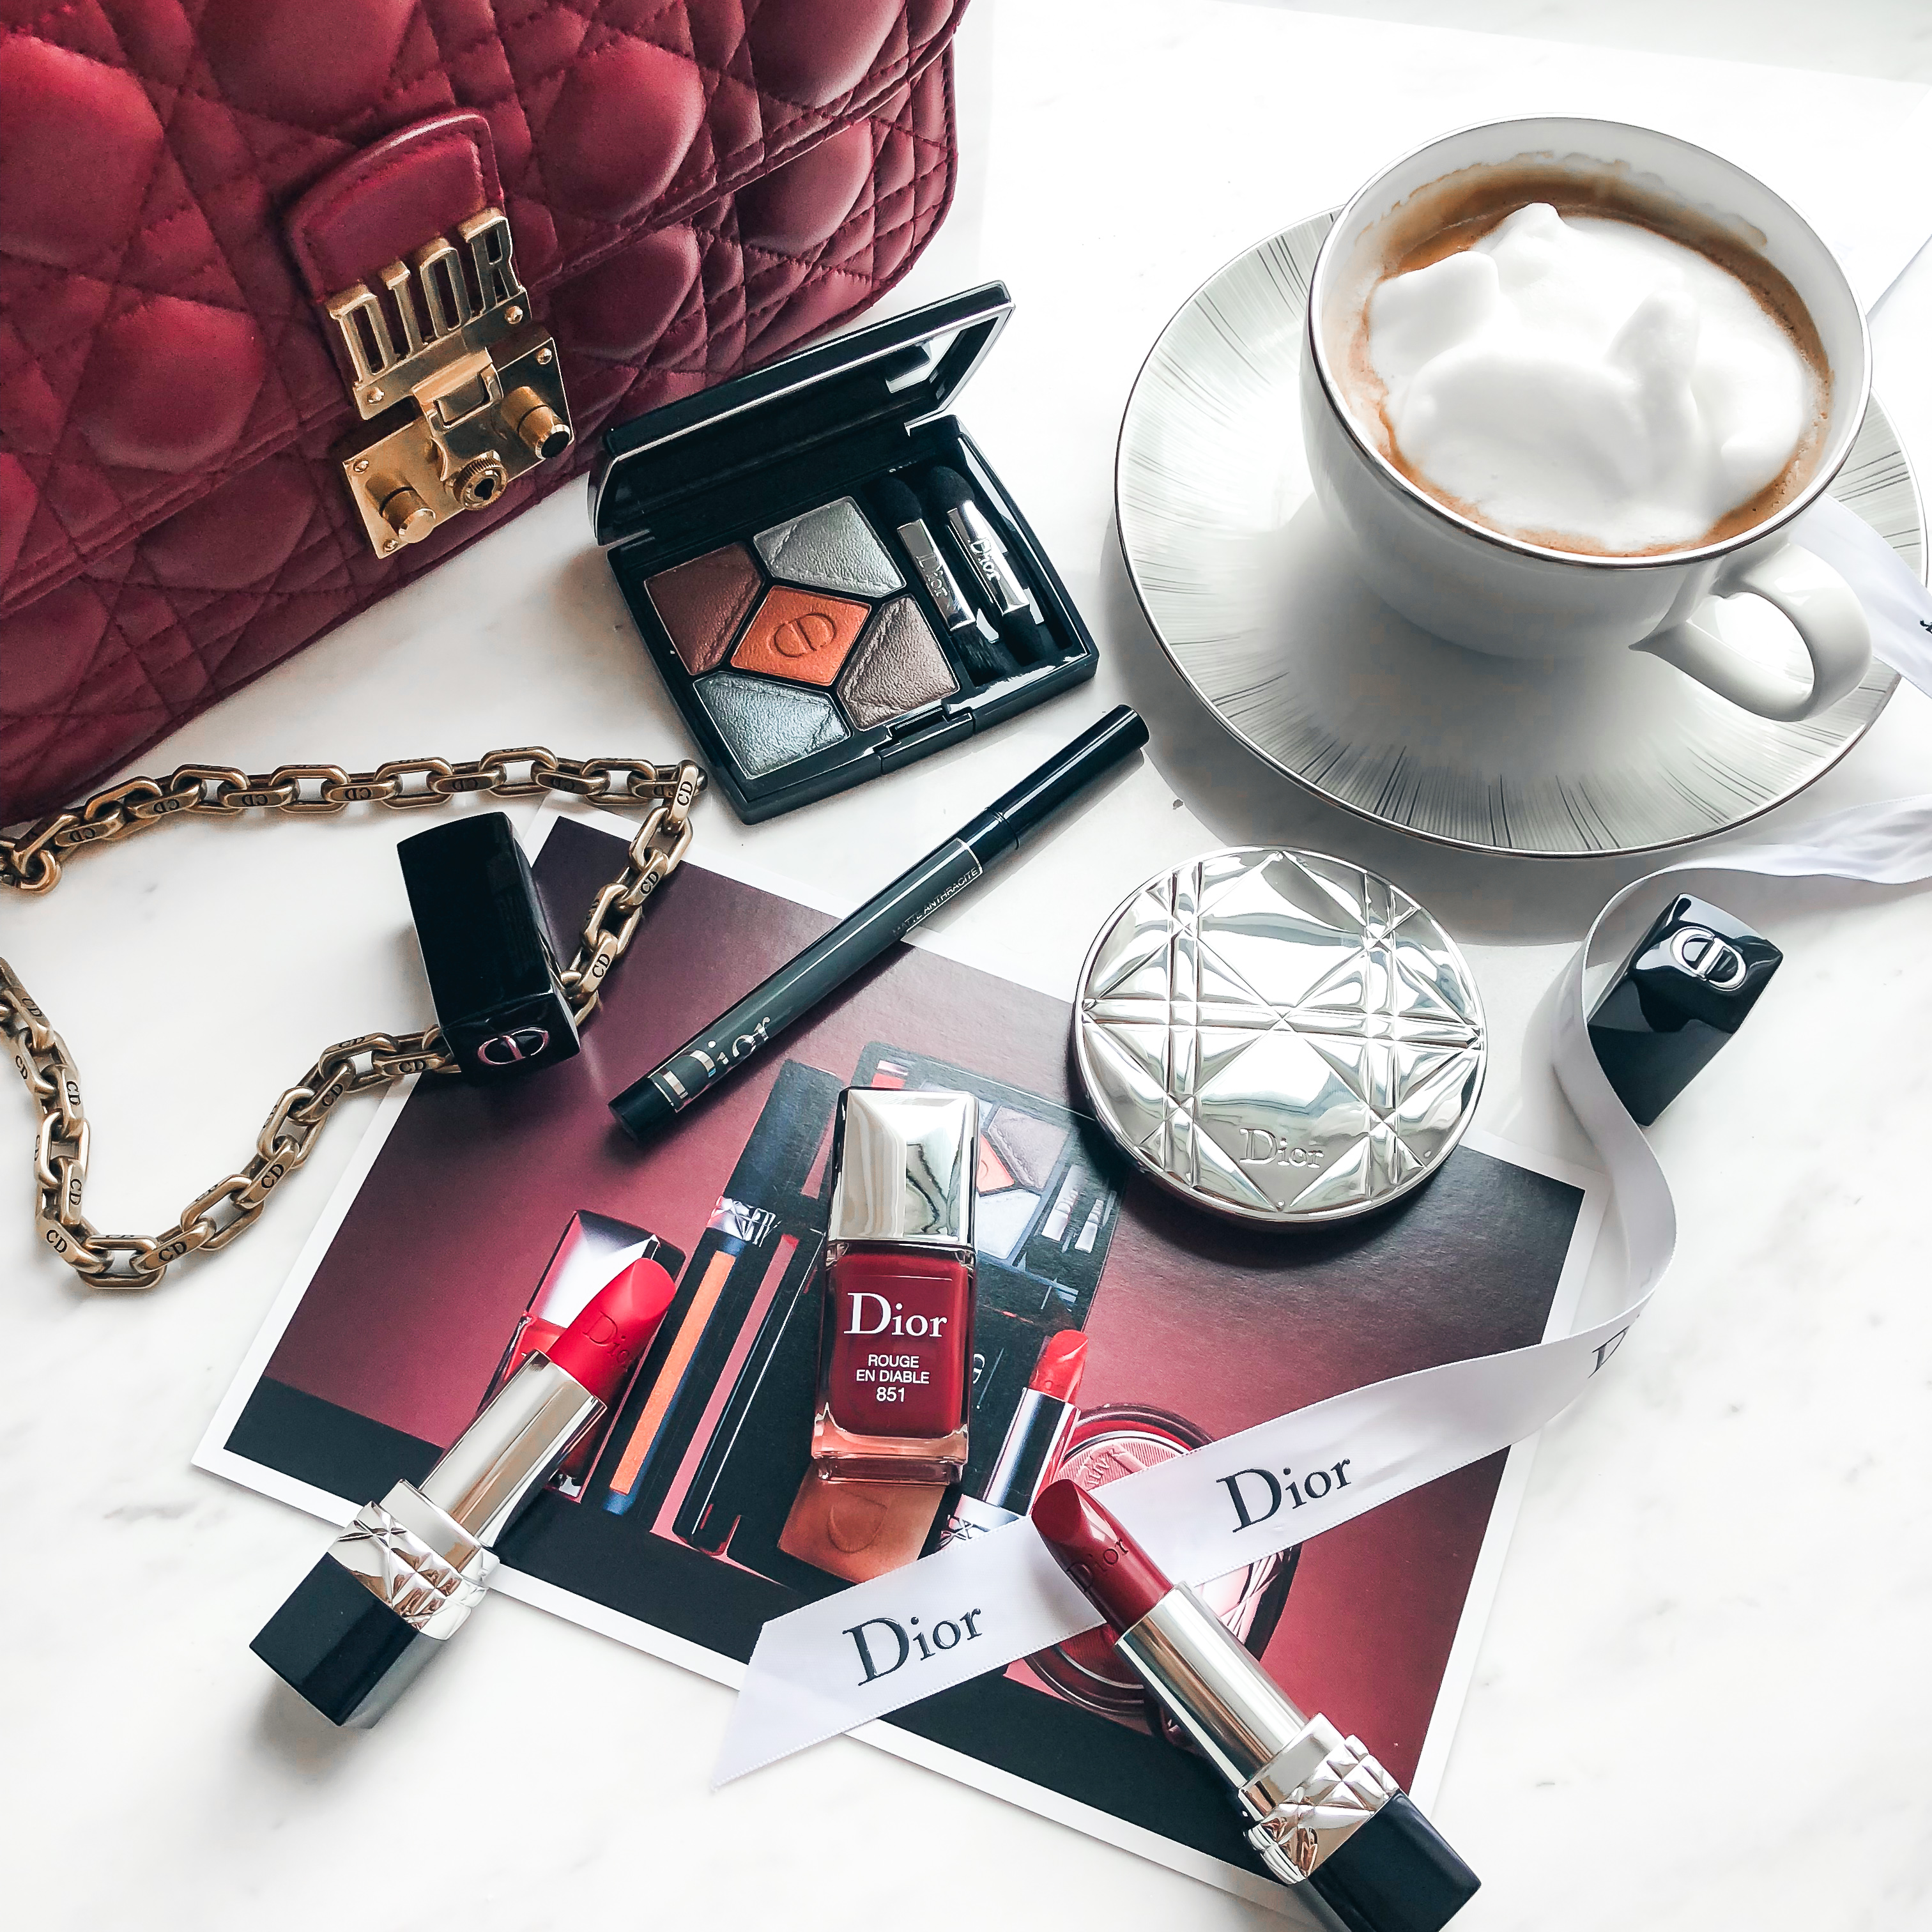 Fashion style Summer dior mix makeup collection for lady